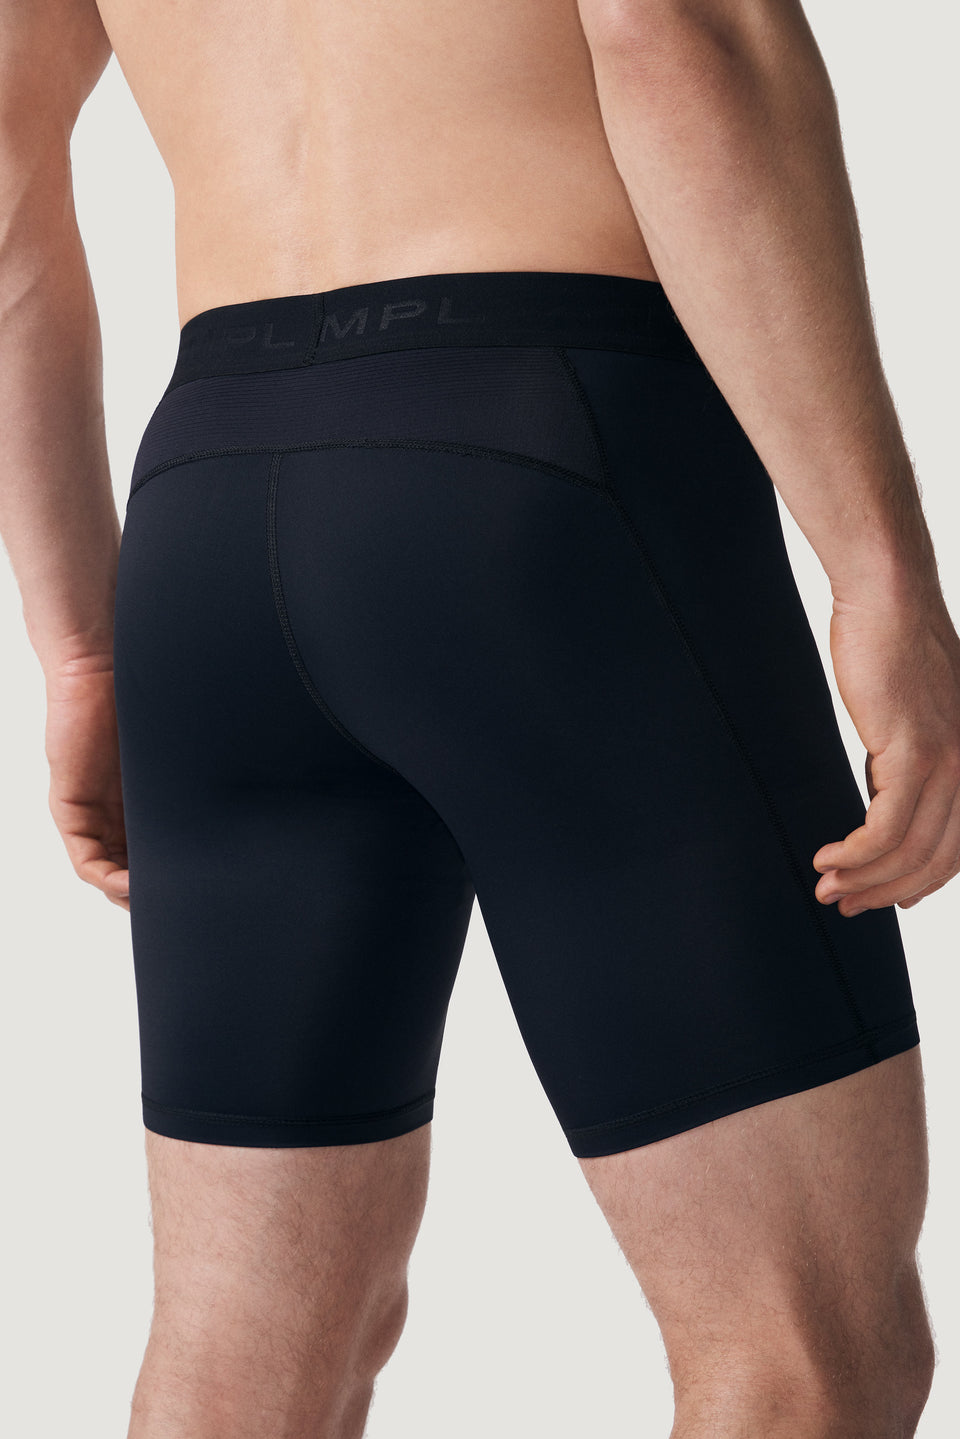 Alpha DRIVE Men's Compression Short